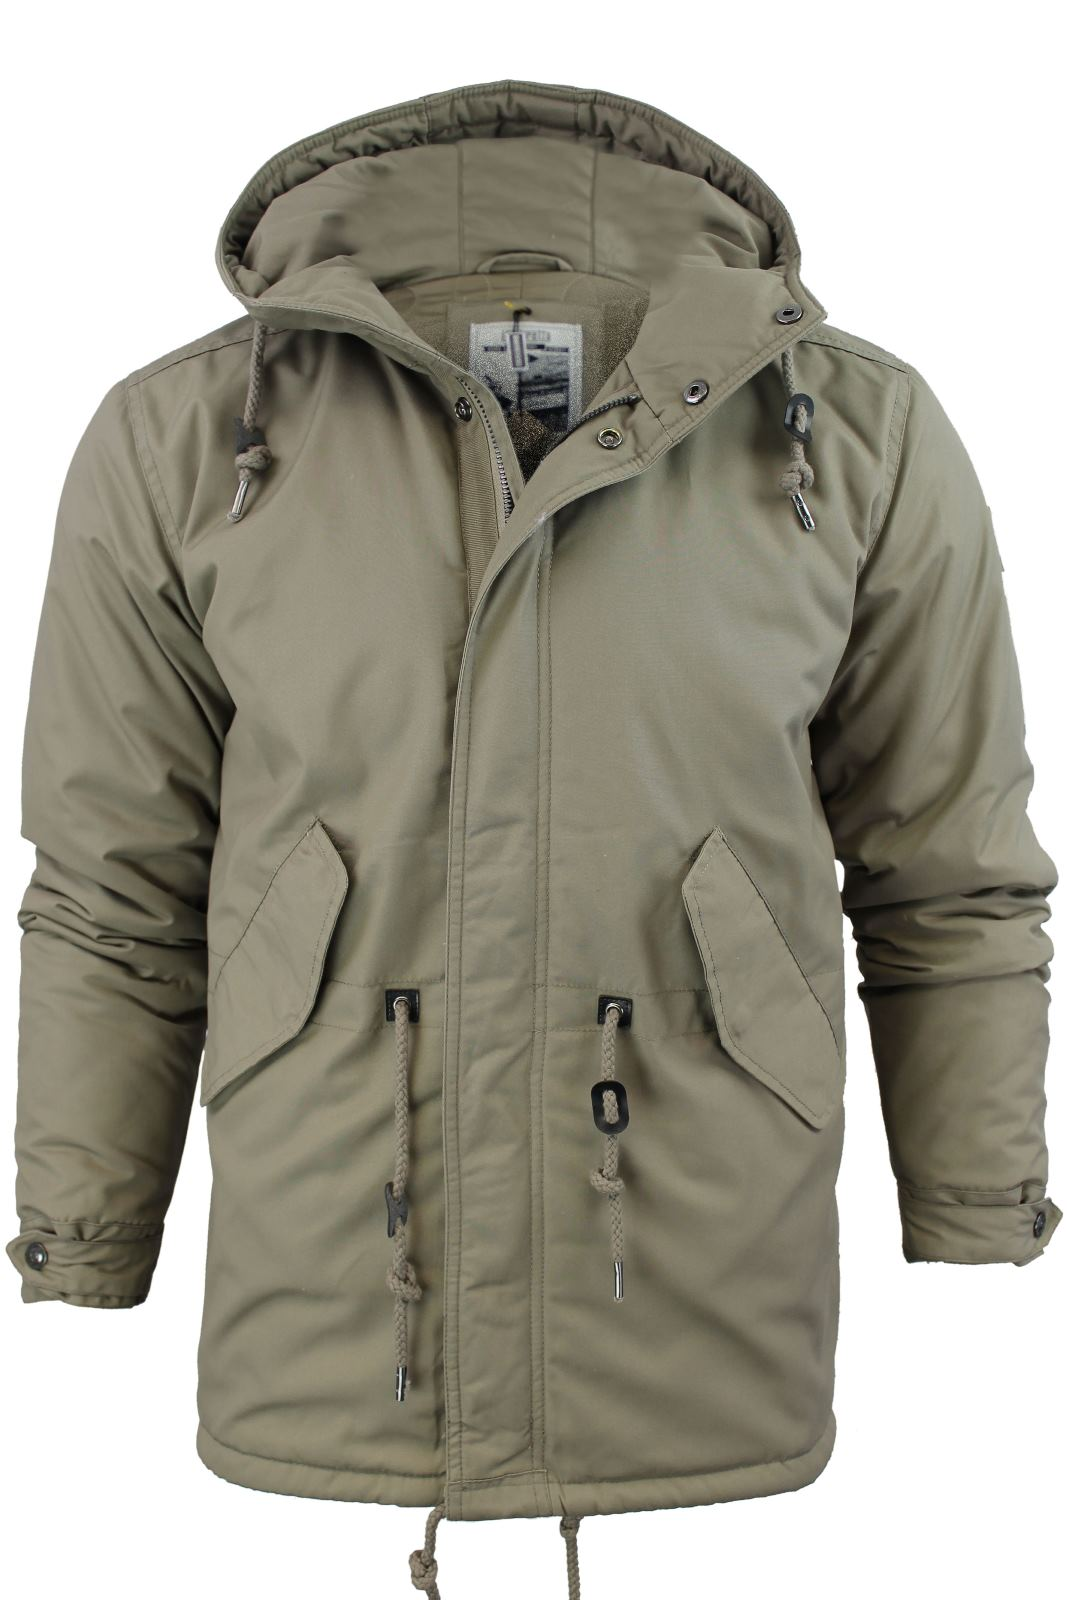 Mens Jackets As outerwear specialists we have a premium selection of men's jackets. Choose an iconic Superdry leather jacket, on-trend military style, or for a more casual look check out our range of bomber jackets.